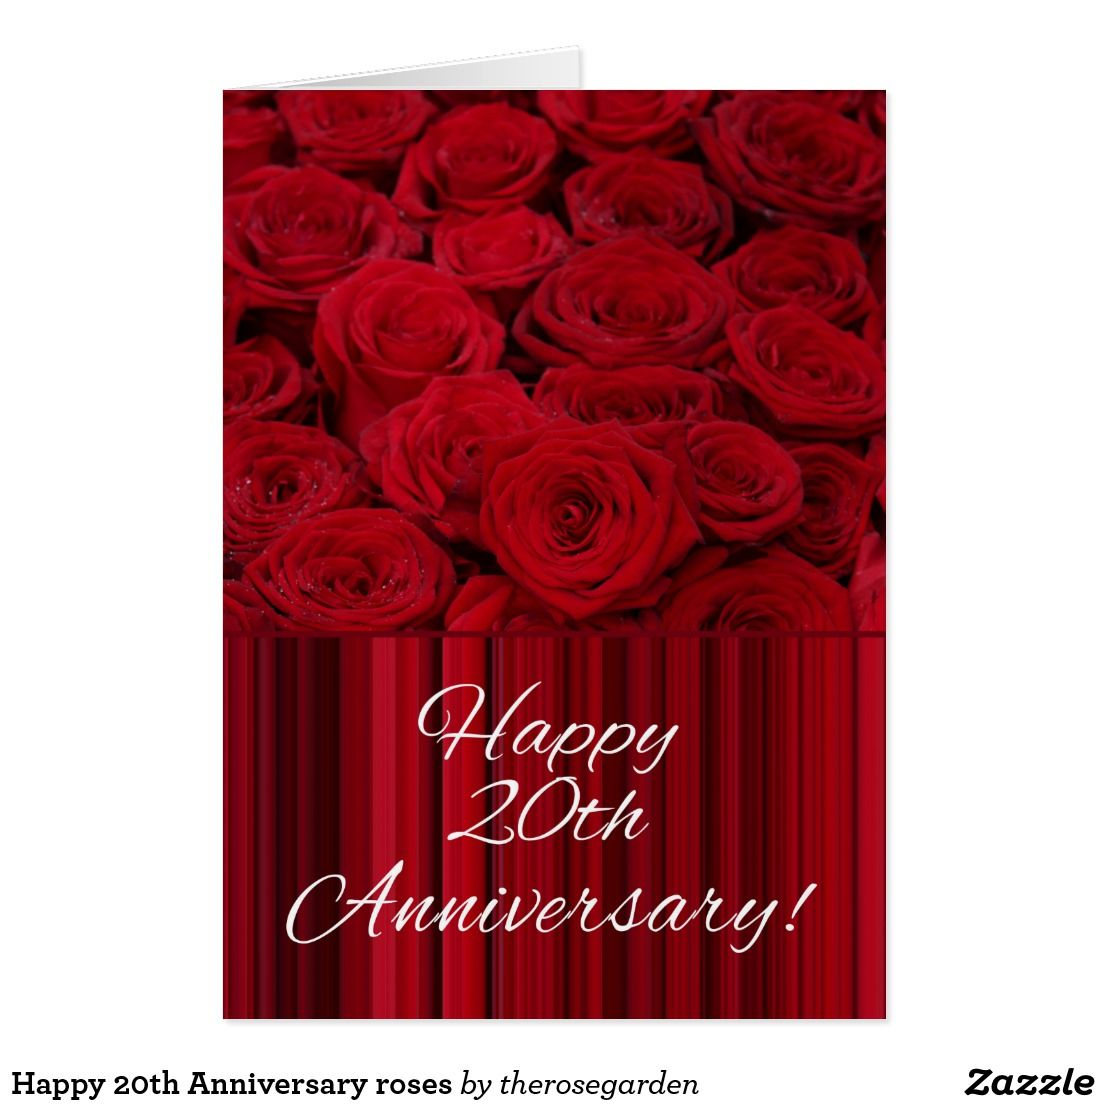 Happy 20th Anniversary roses Card | Shared board for greeting cards ...